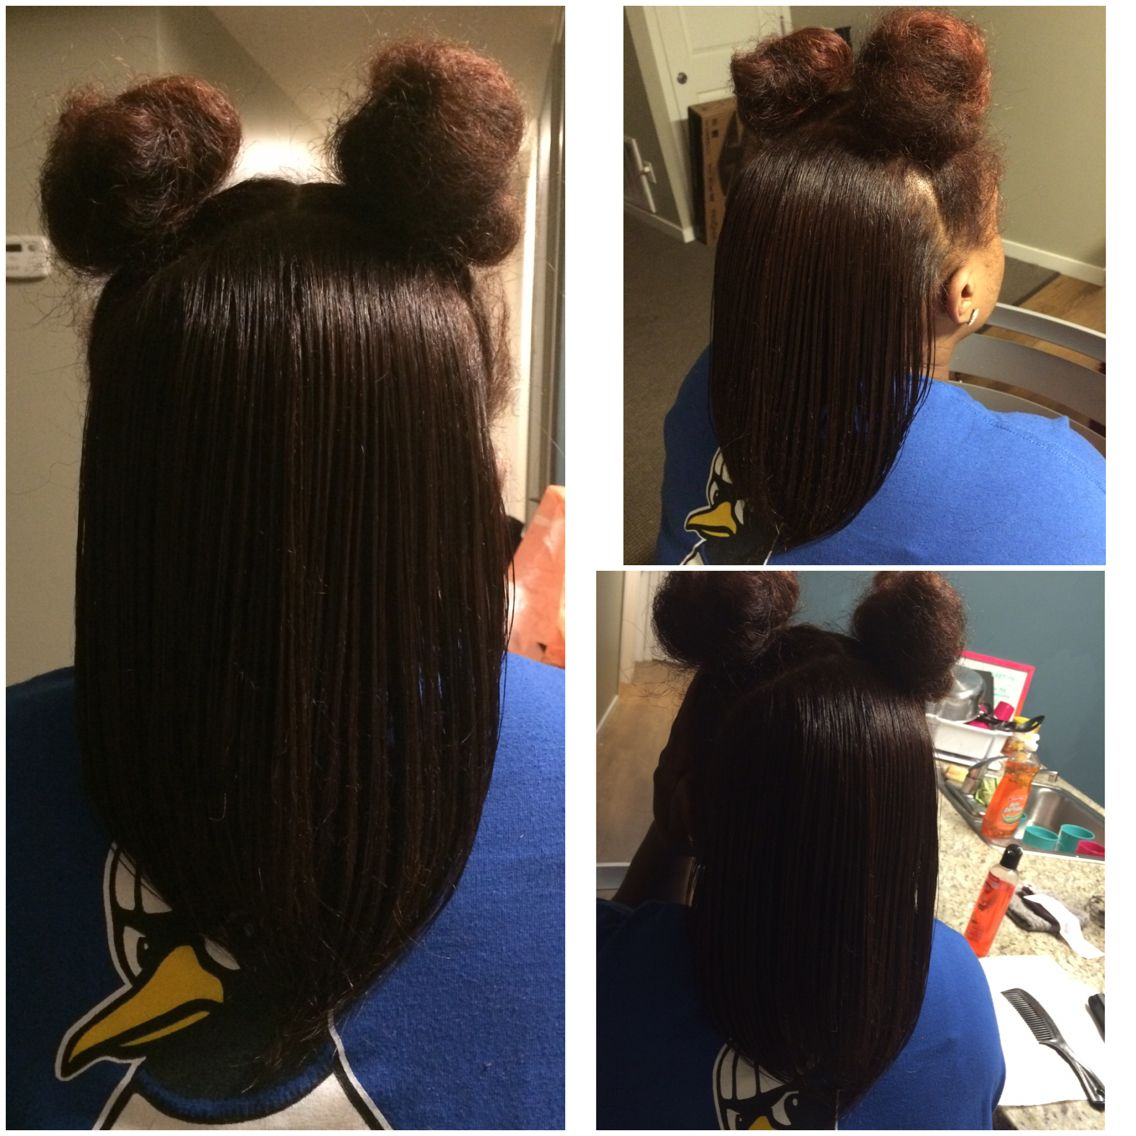 Flat Iron With 2 Puff Balls Done By Me Lovewhatido Flatiron Cosmetologist Puffballs Makeanappointment Smoo Ball Hairstyles Down Hairstyles Hair Styles